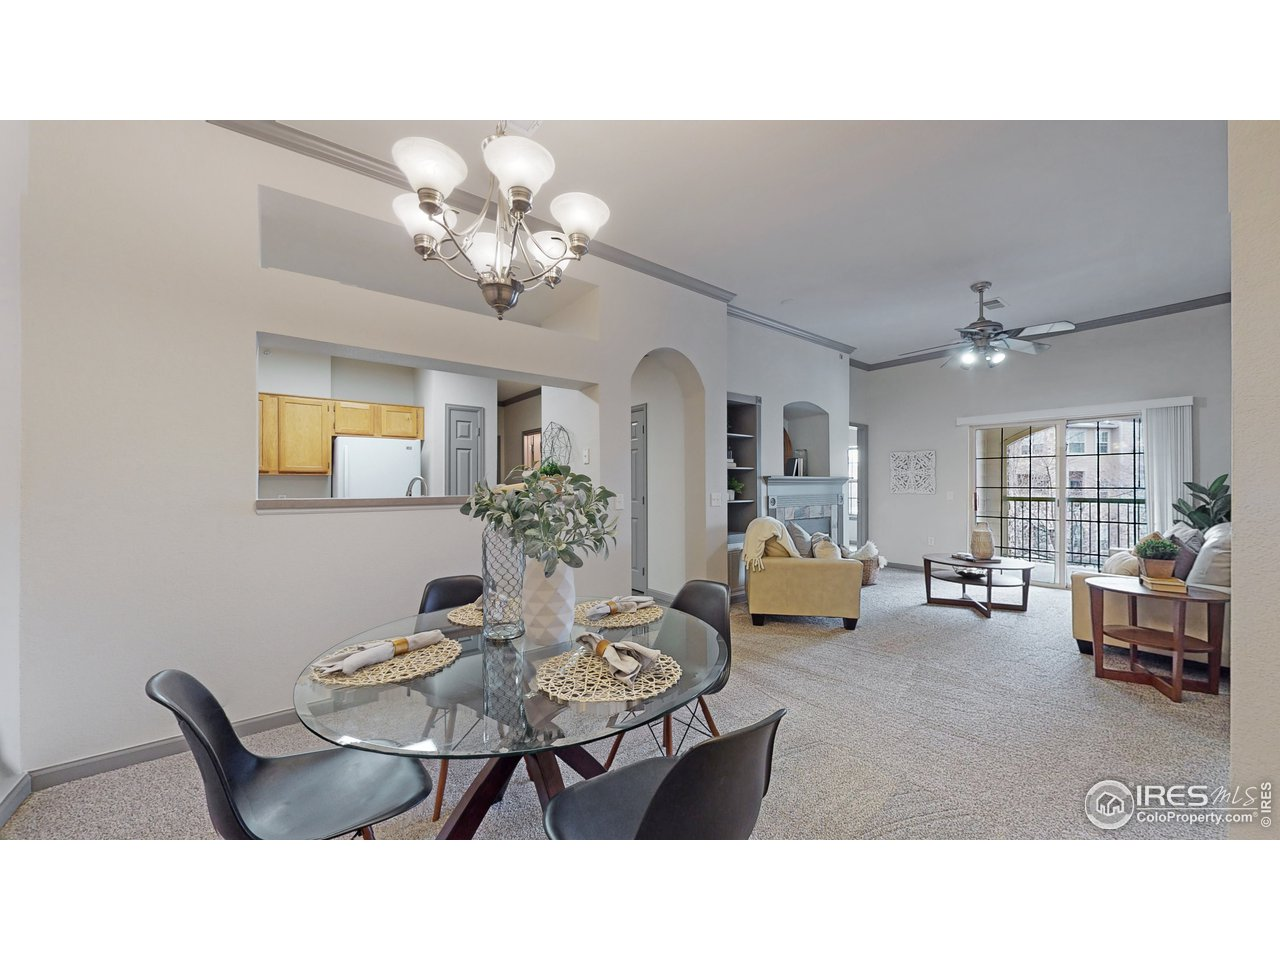 Dining area right off kitchen